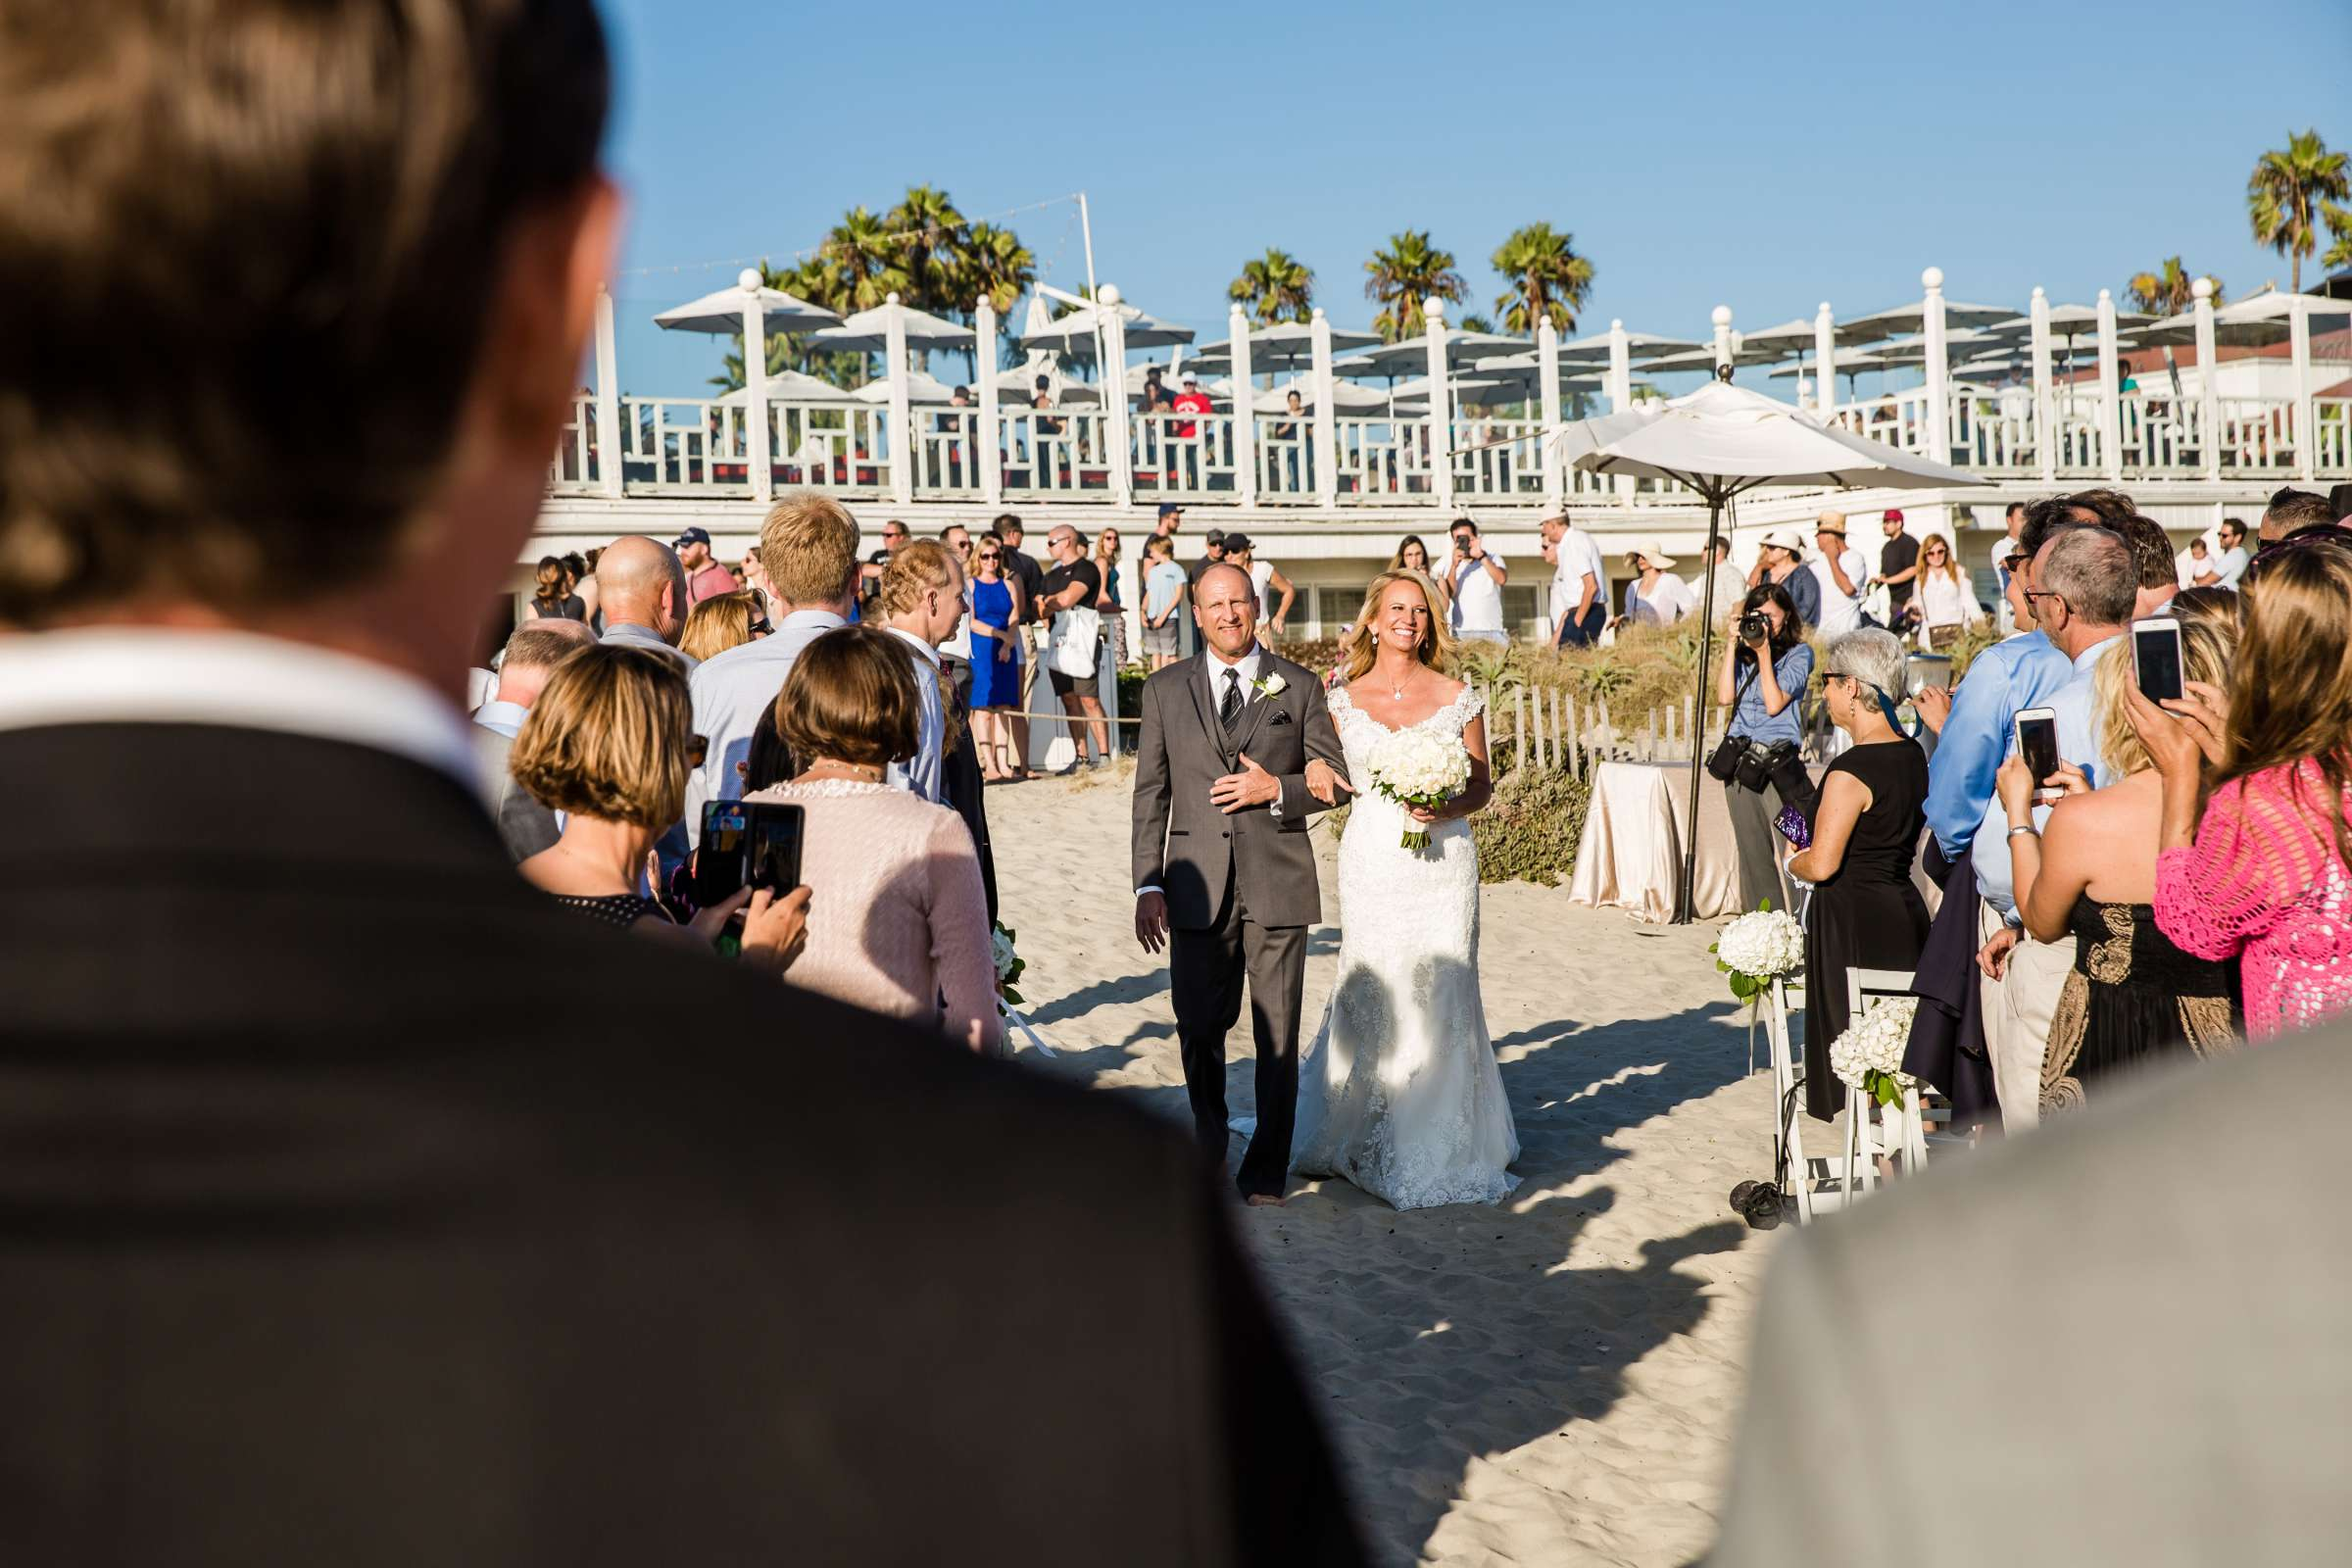 Hotel Del Coronado Wedding coordinated by Creative Affairs Inc, Diane and Paul Wedding Photo #54 by True Photography